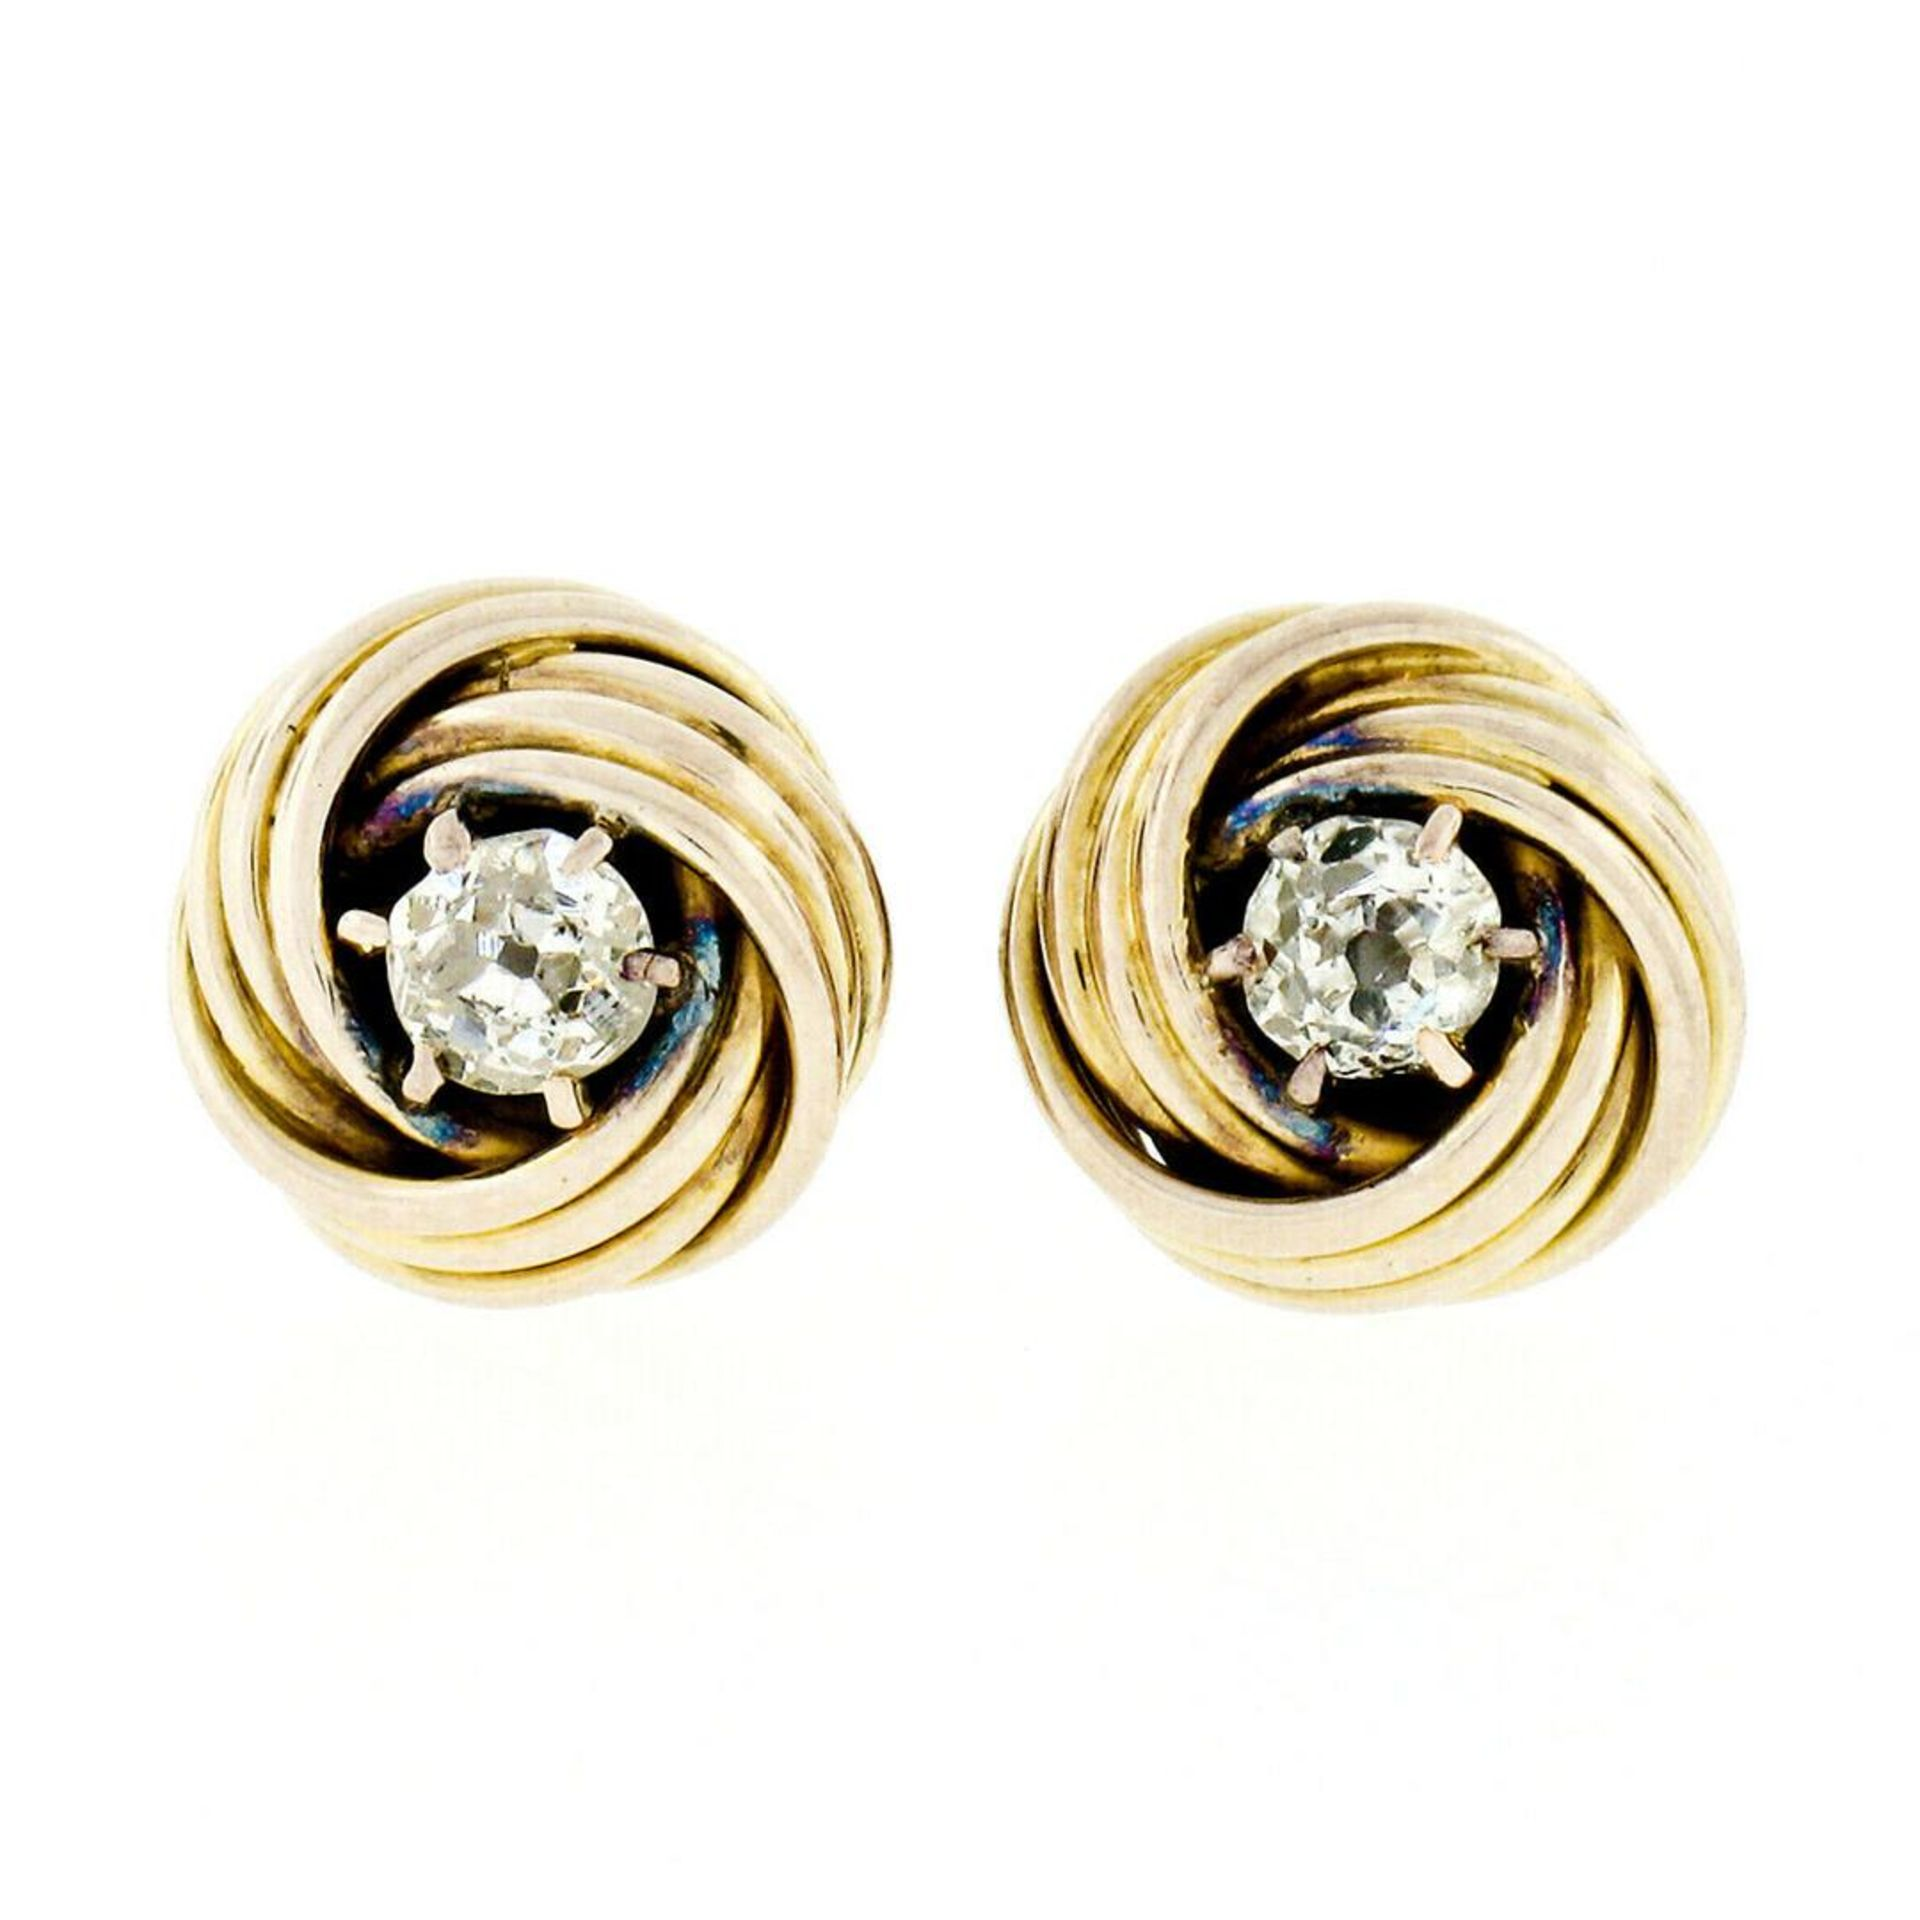 Victorian 14kt Yellow Gold 0.36 ctw Old Mine Cut Diamond Love Knot Stud Earrings